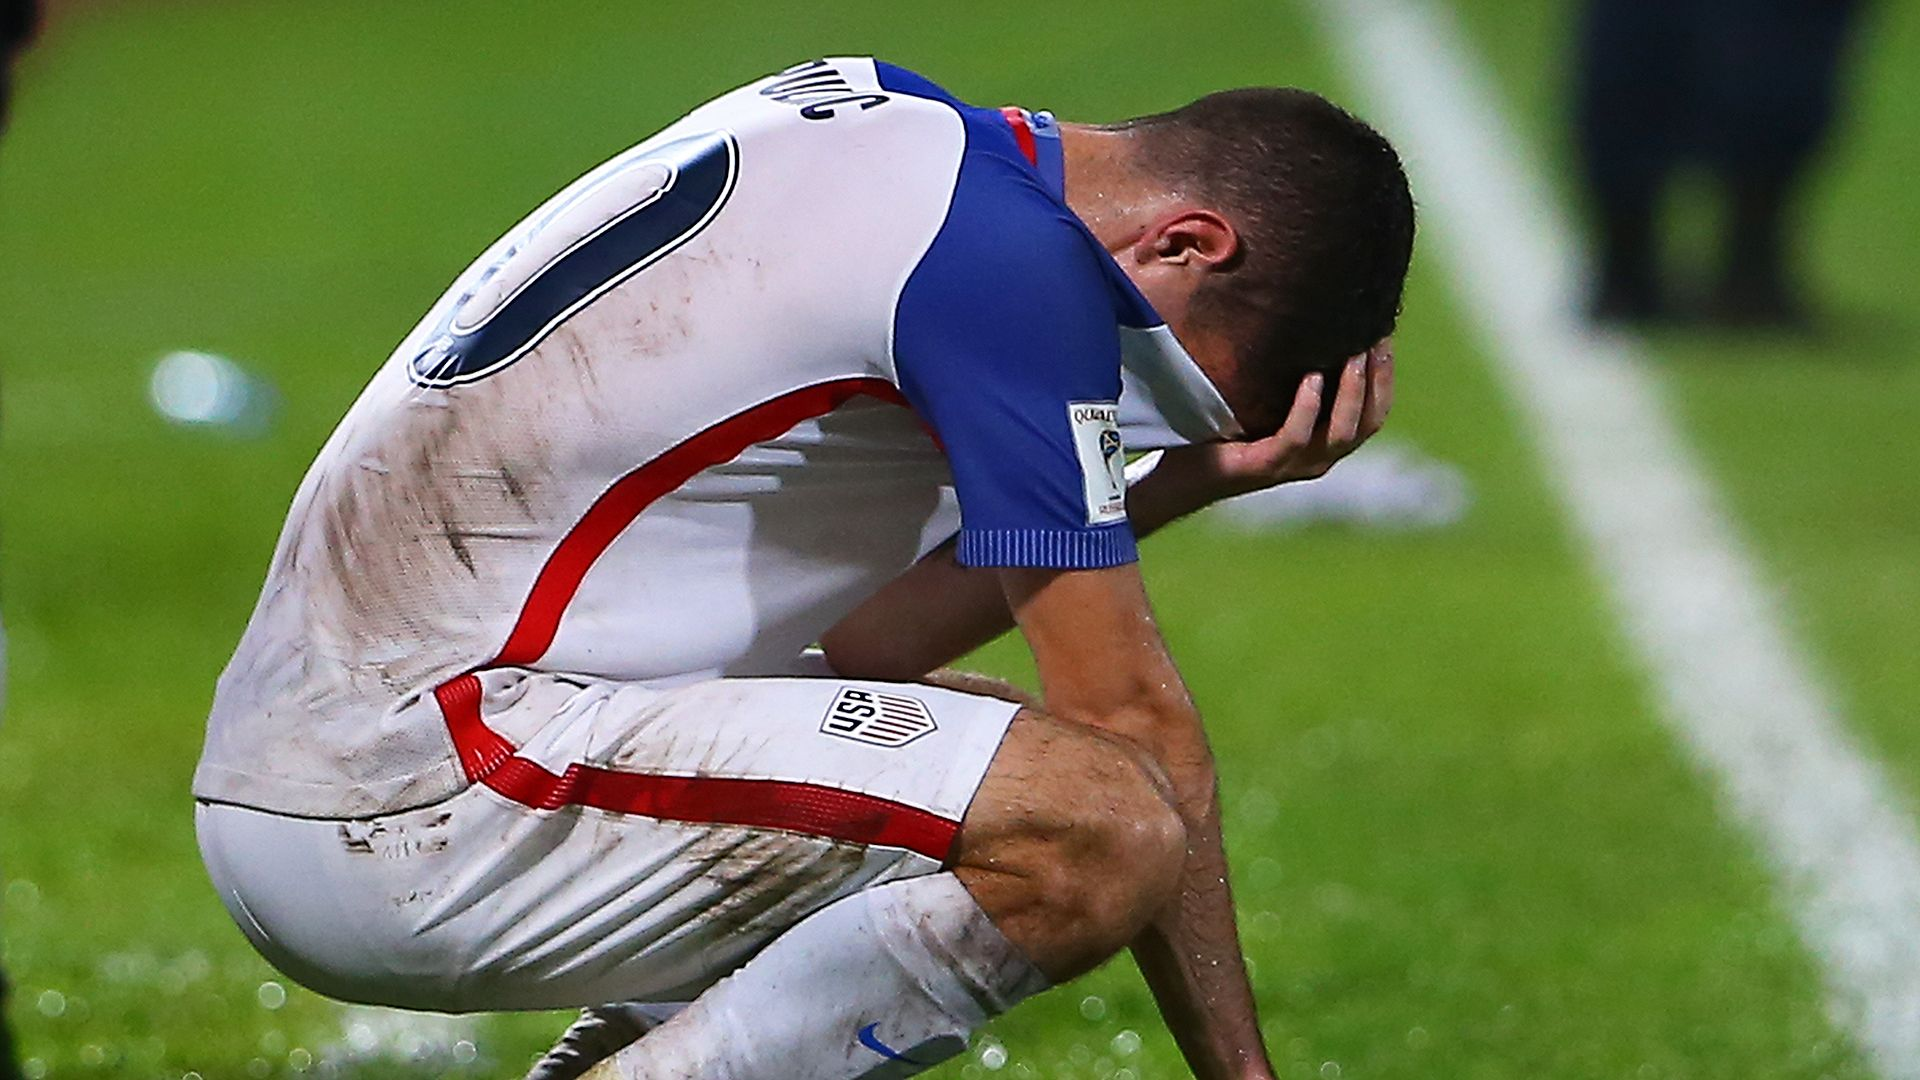 US footballer Christian Pulisic sheds tears after losing a World Cup 2018 qualifier against T&T.